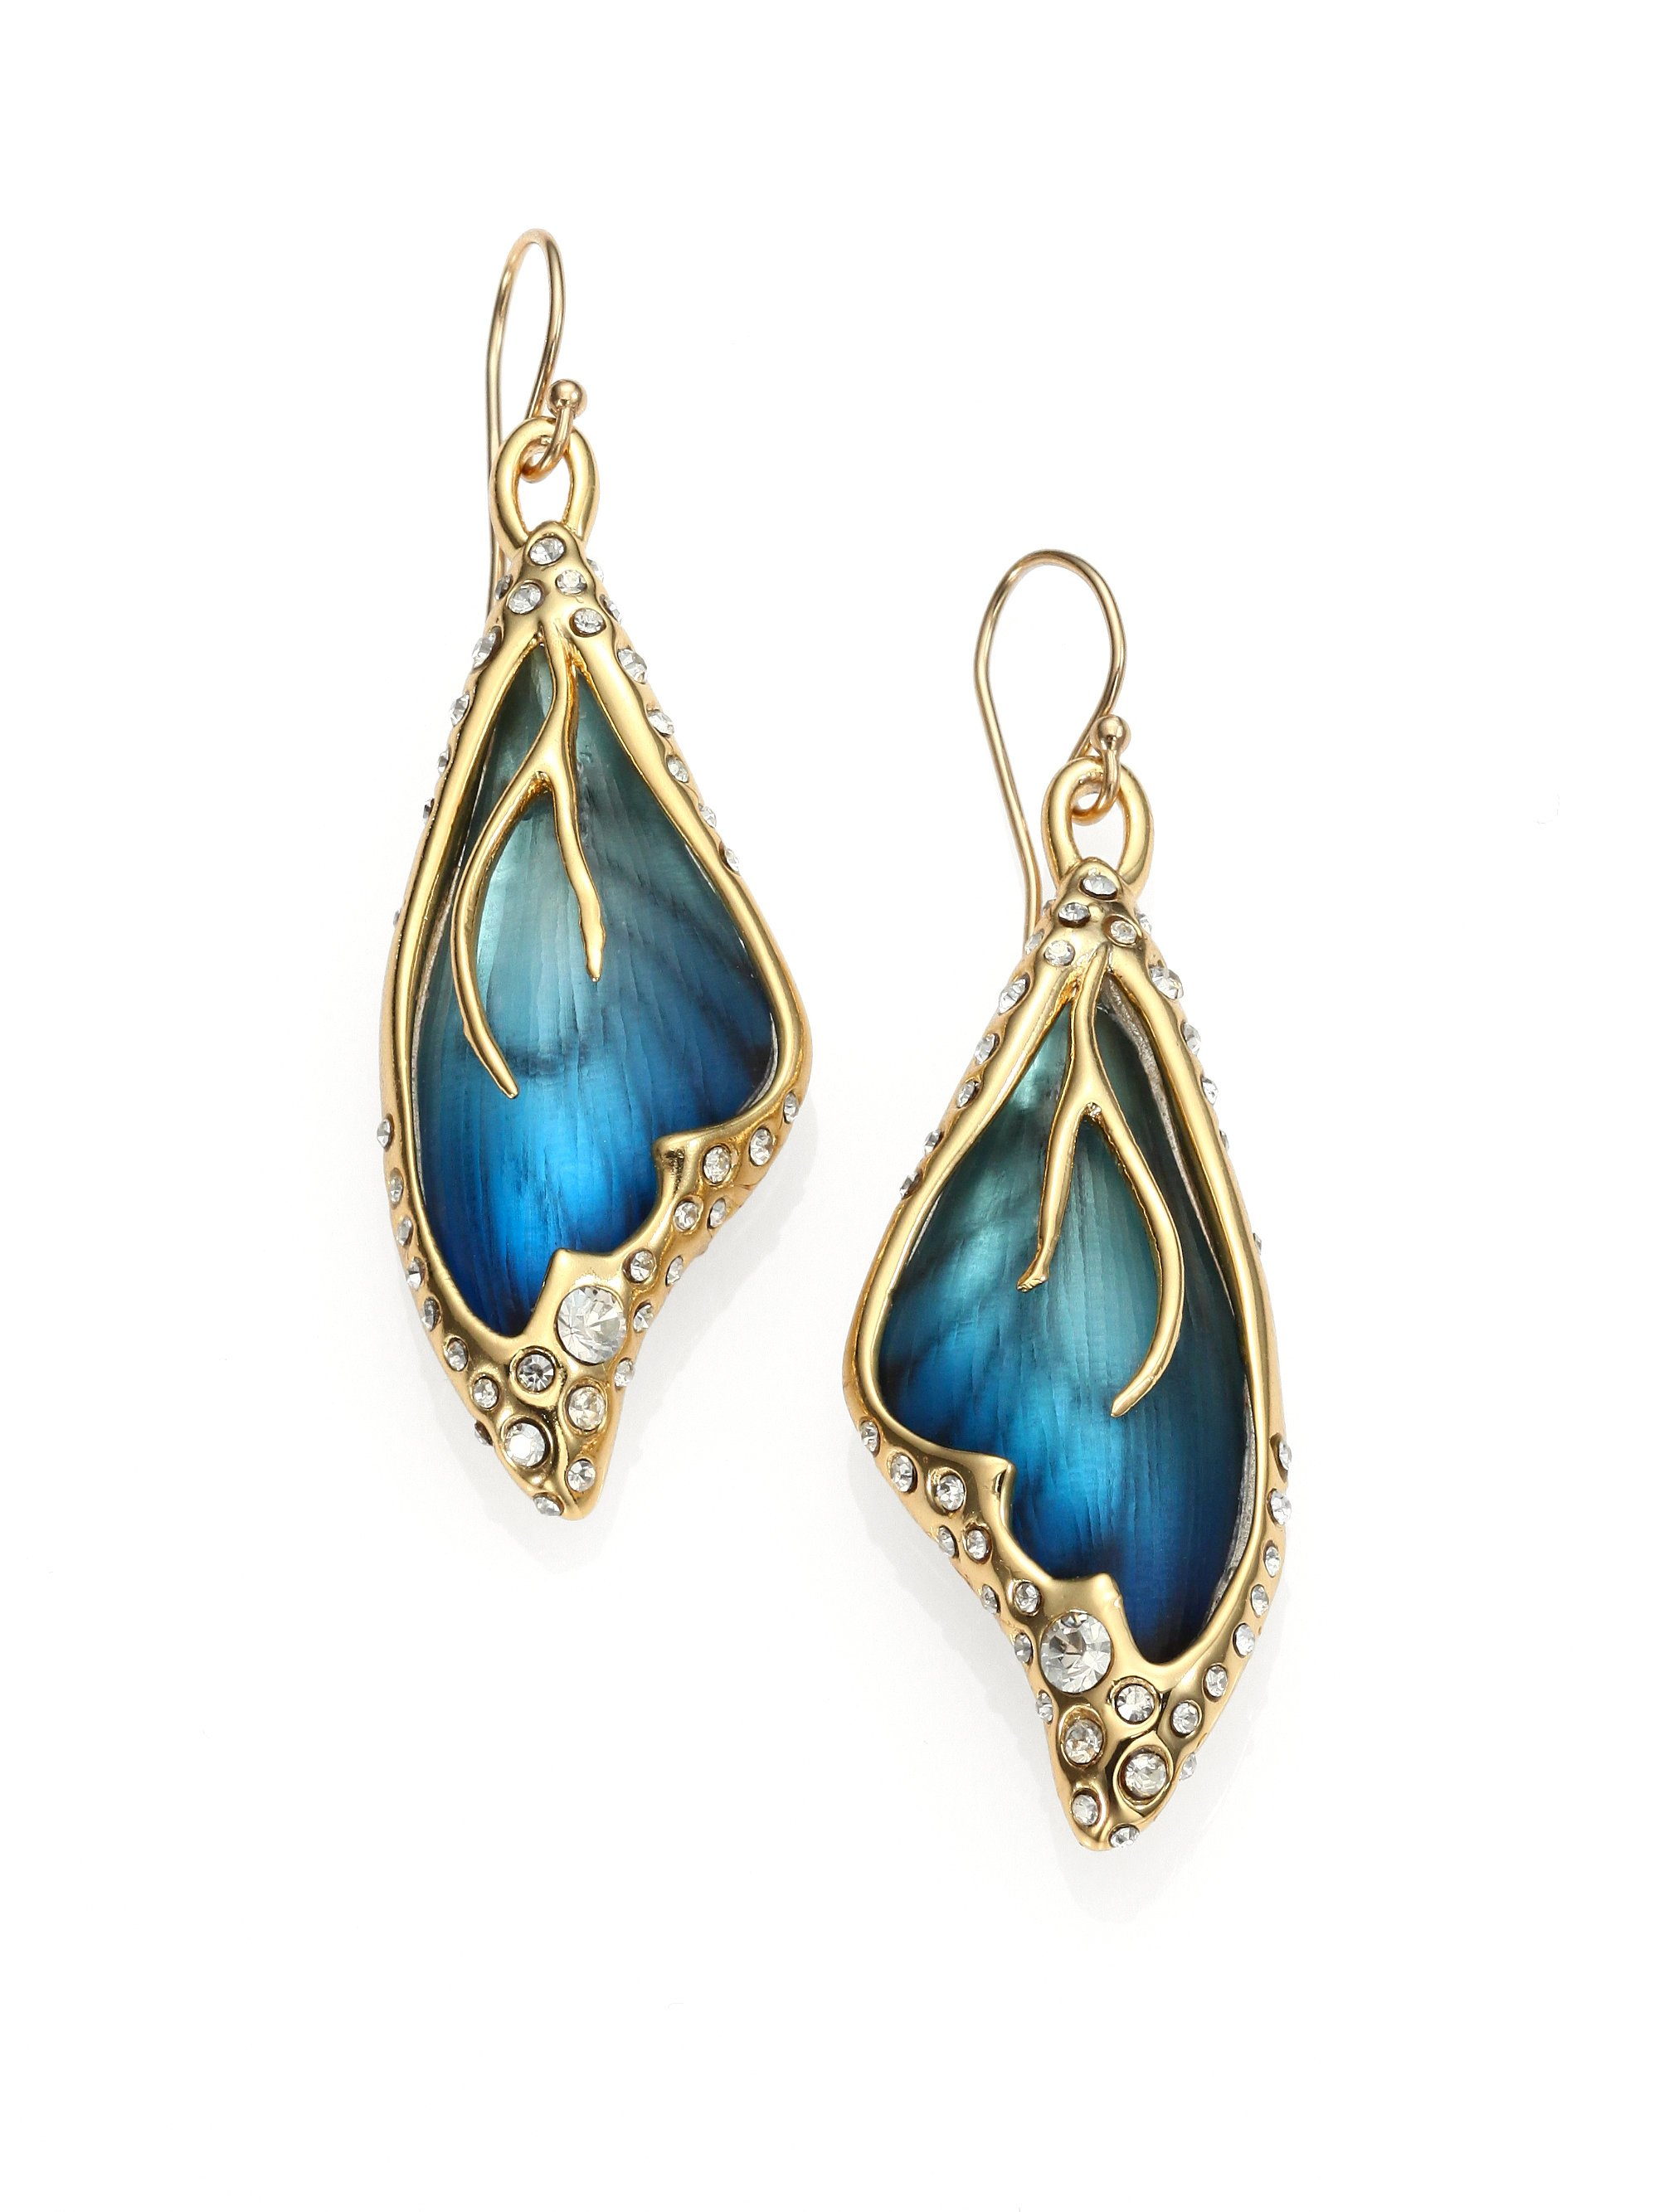 Alexis Bittar Triple Lucite Drop Earrings T52Jlt